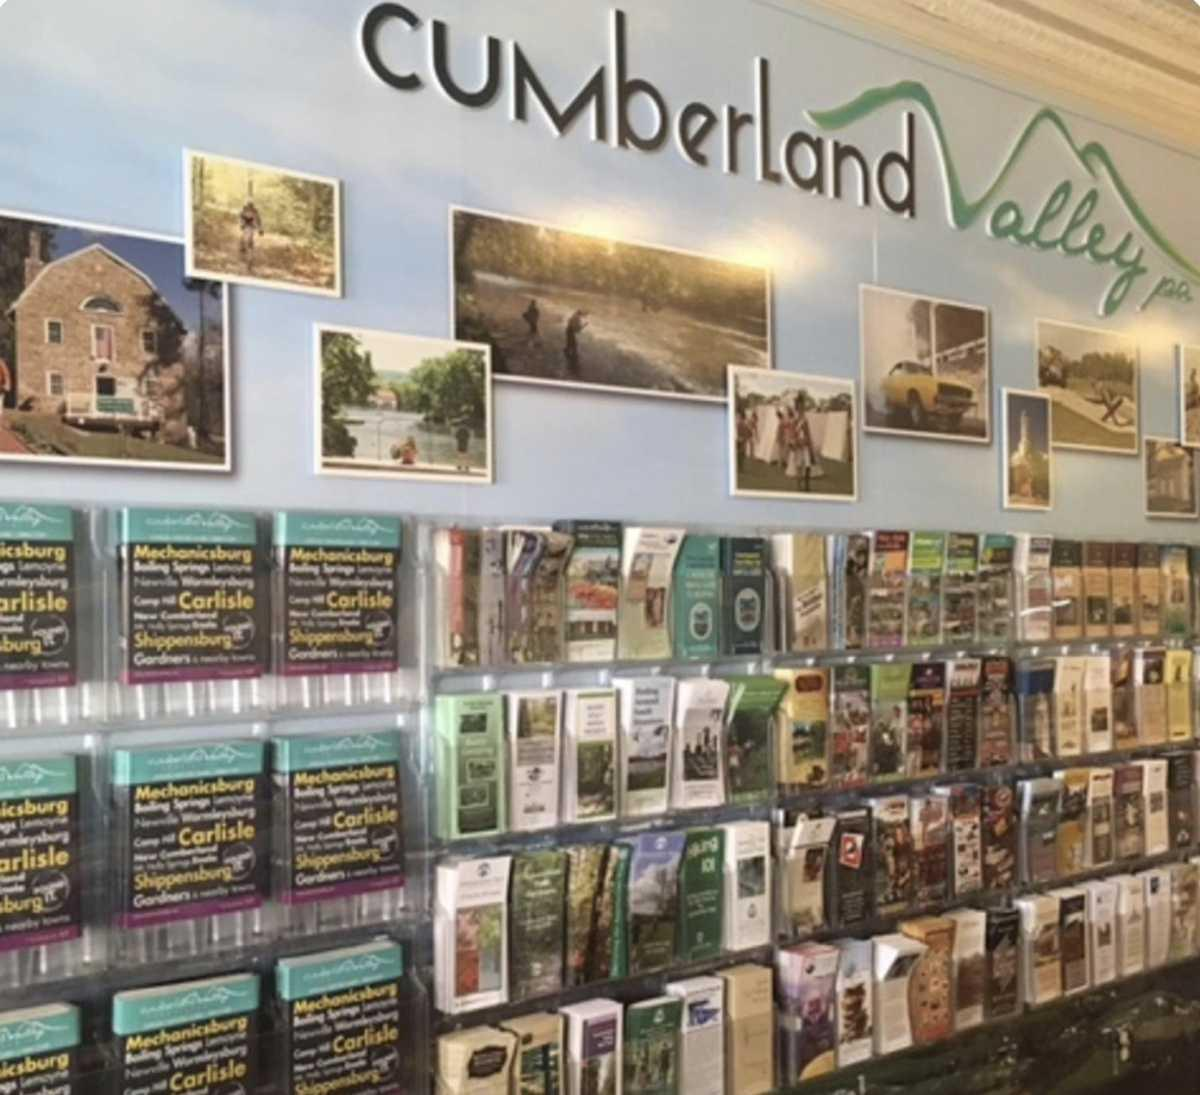 Cumberland Valley Visitor's Center